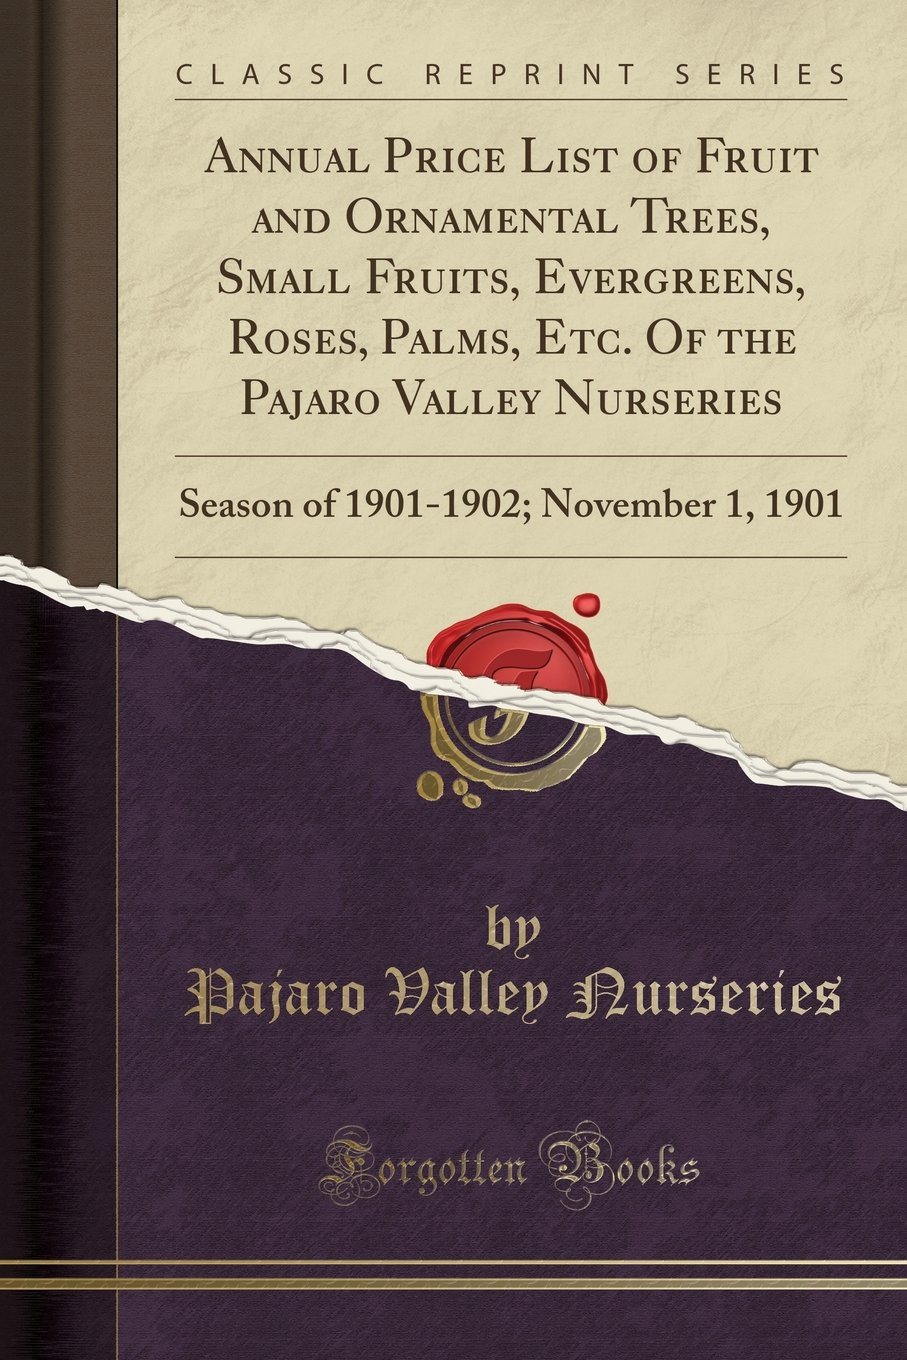 Annual Price List of Fruit and Ornamental Trees, Small Fruits, Evergreens, Roses, Palms, Etc. Of the Pajaro Valley Nurseries: Season of 1901-1902; November 1, 1901 (Classic Reprint) pdf